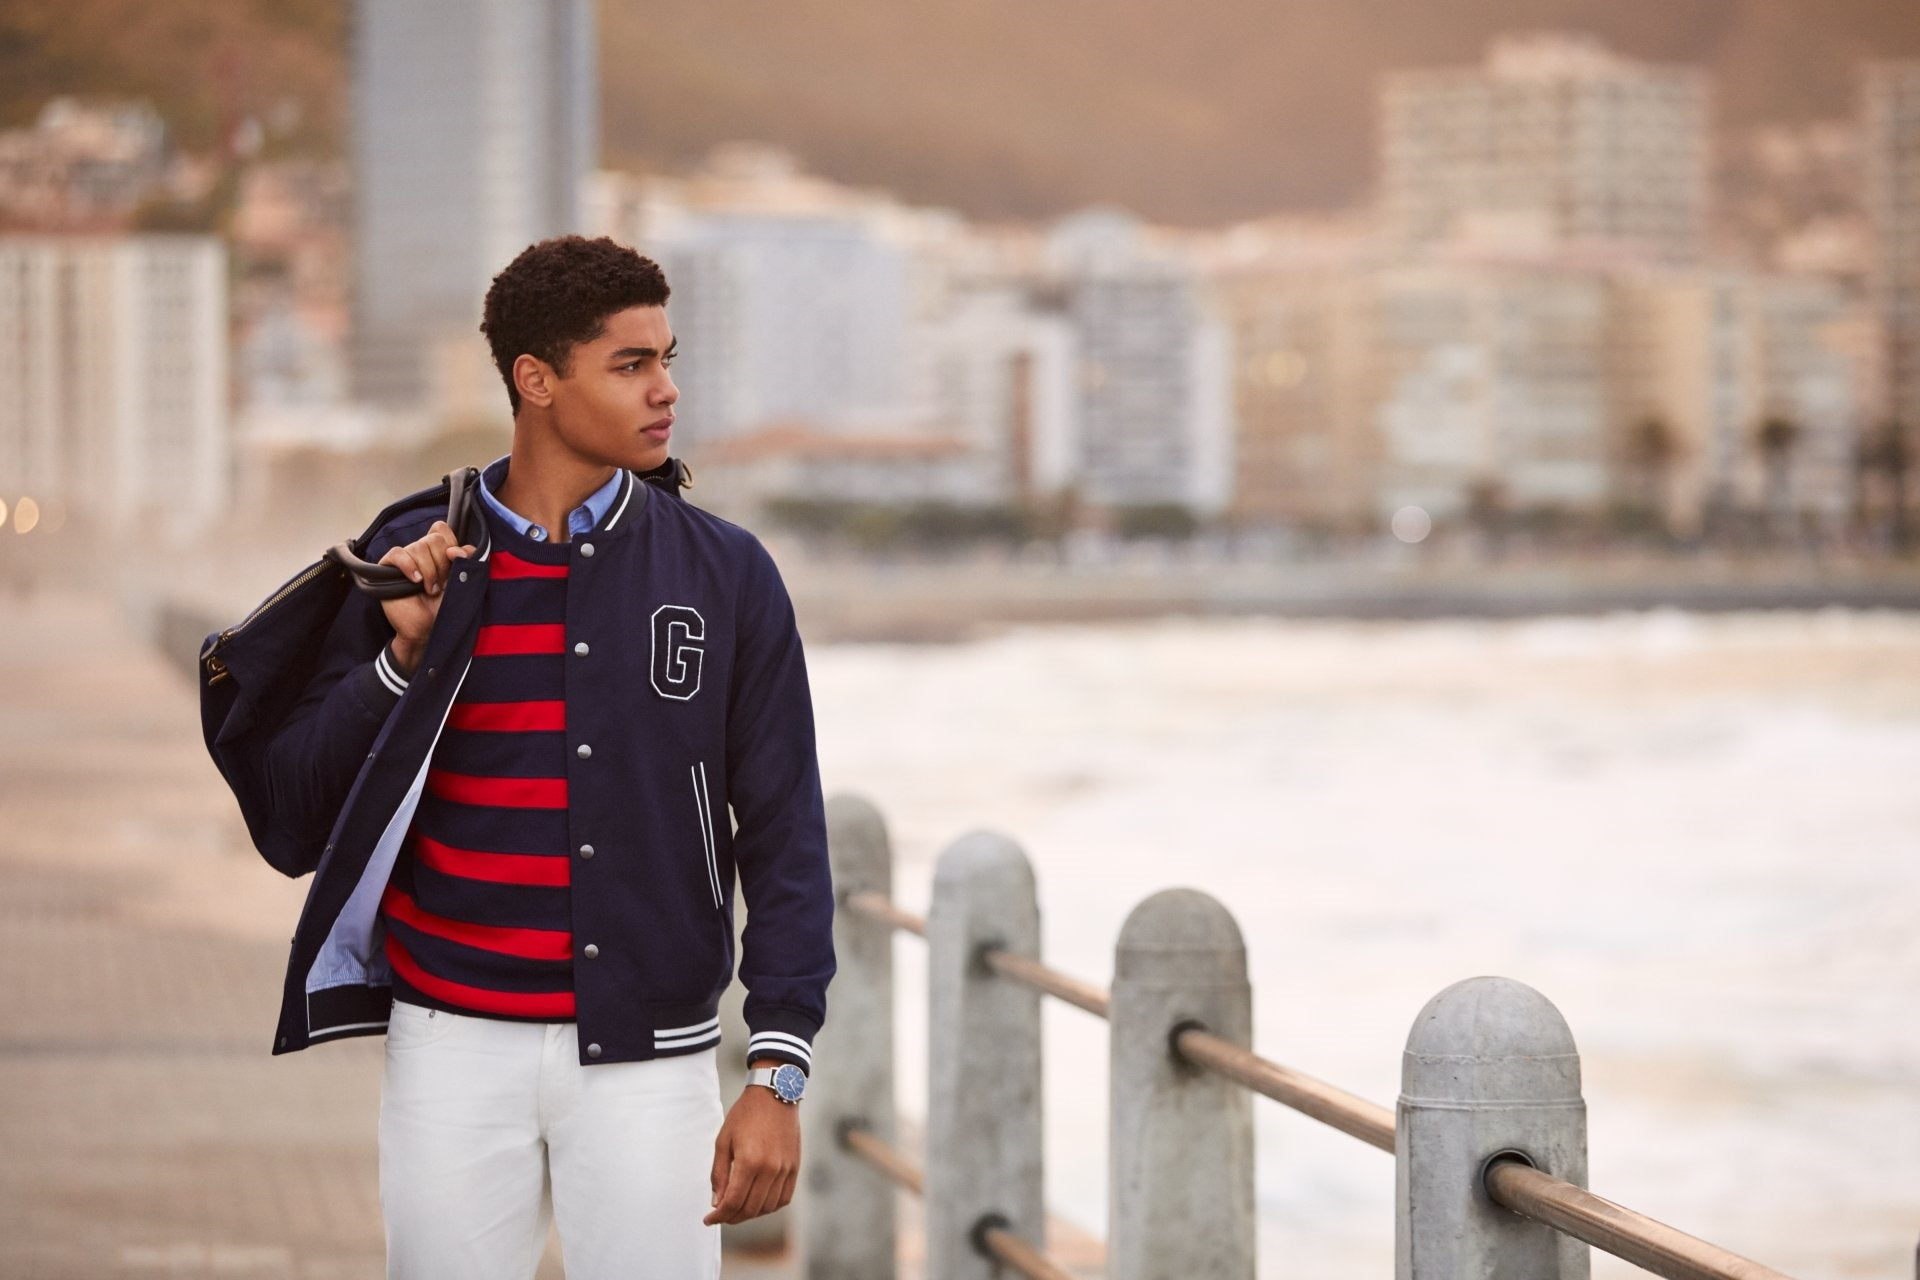 For the love of Varsity Jackets!